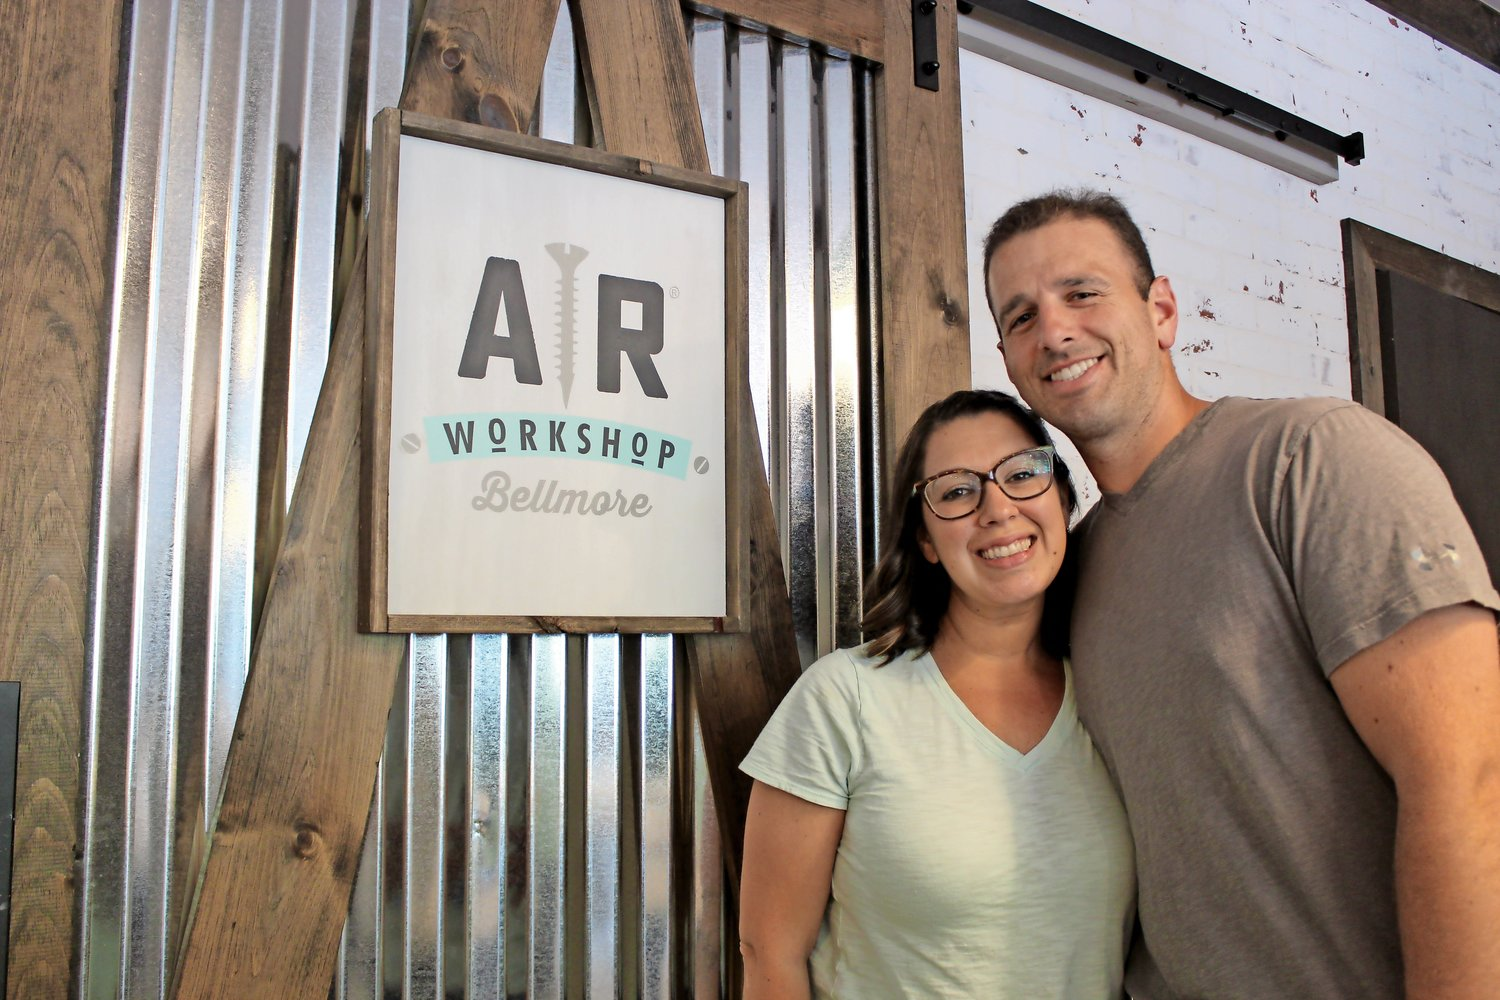 Bellmore residents Julie and Michael Alveari opened AR Workshop's Bellmore location earlier this year, giving the community a place to create and collaborate over DIY activities.